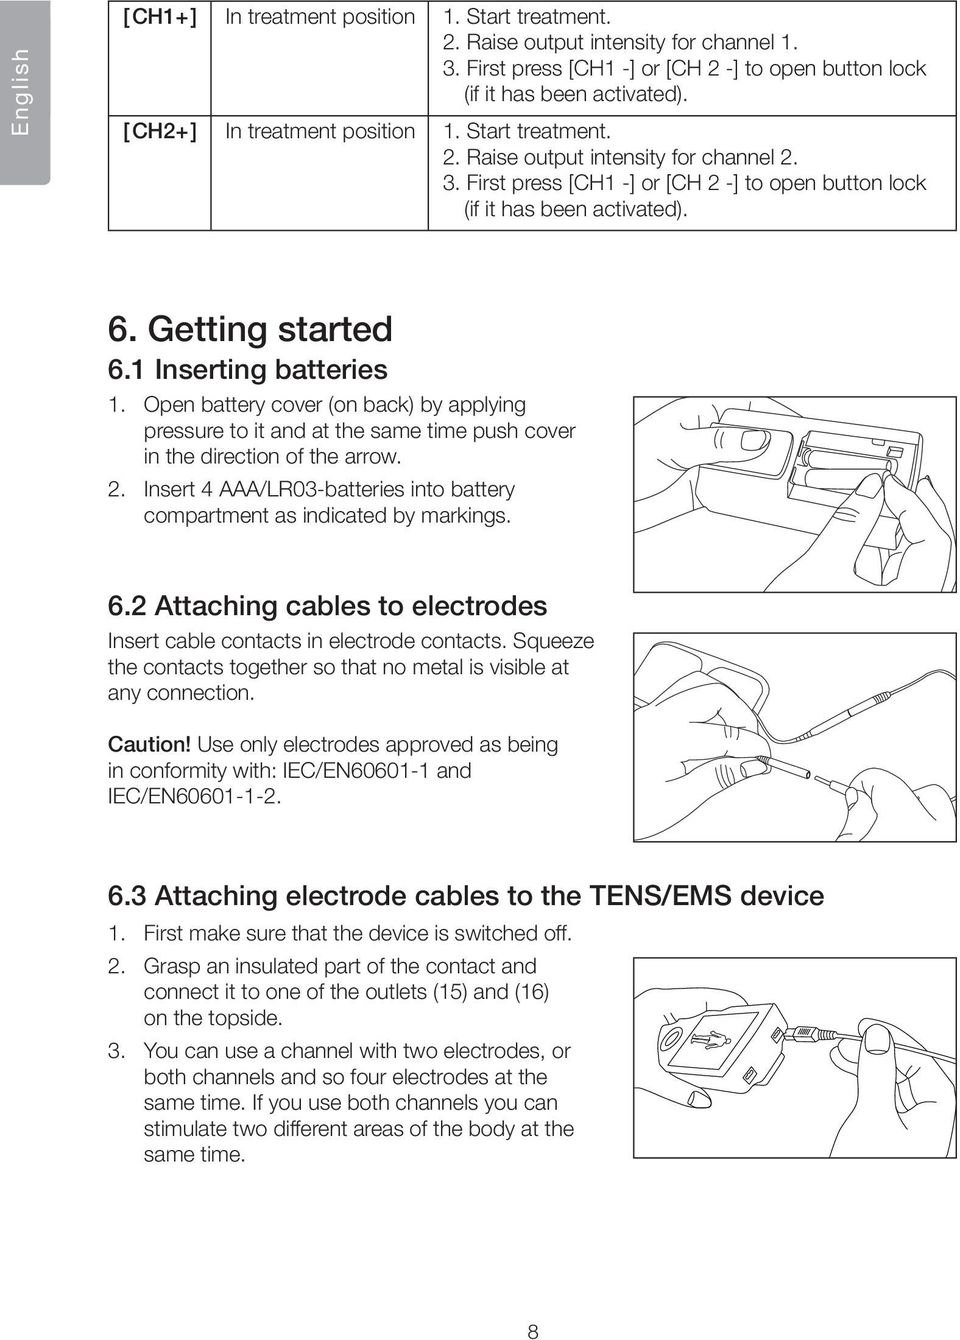 1 Inserting batteries 1. Open battery cover (on back) by applying pressure to it and at the same time push cover in the direction of the arrow. 2.